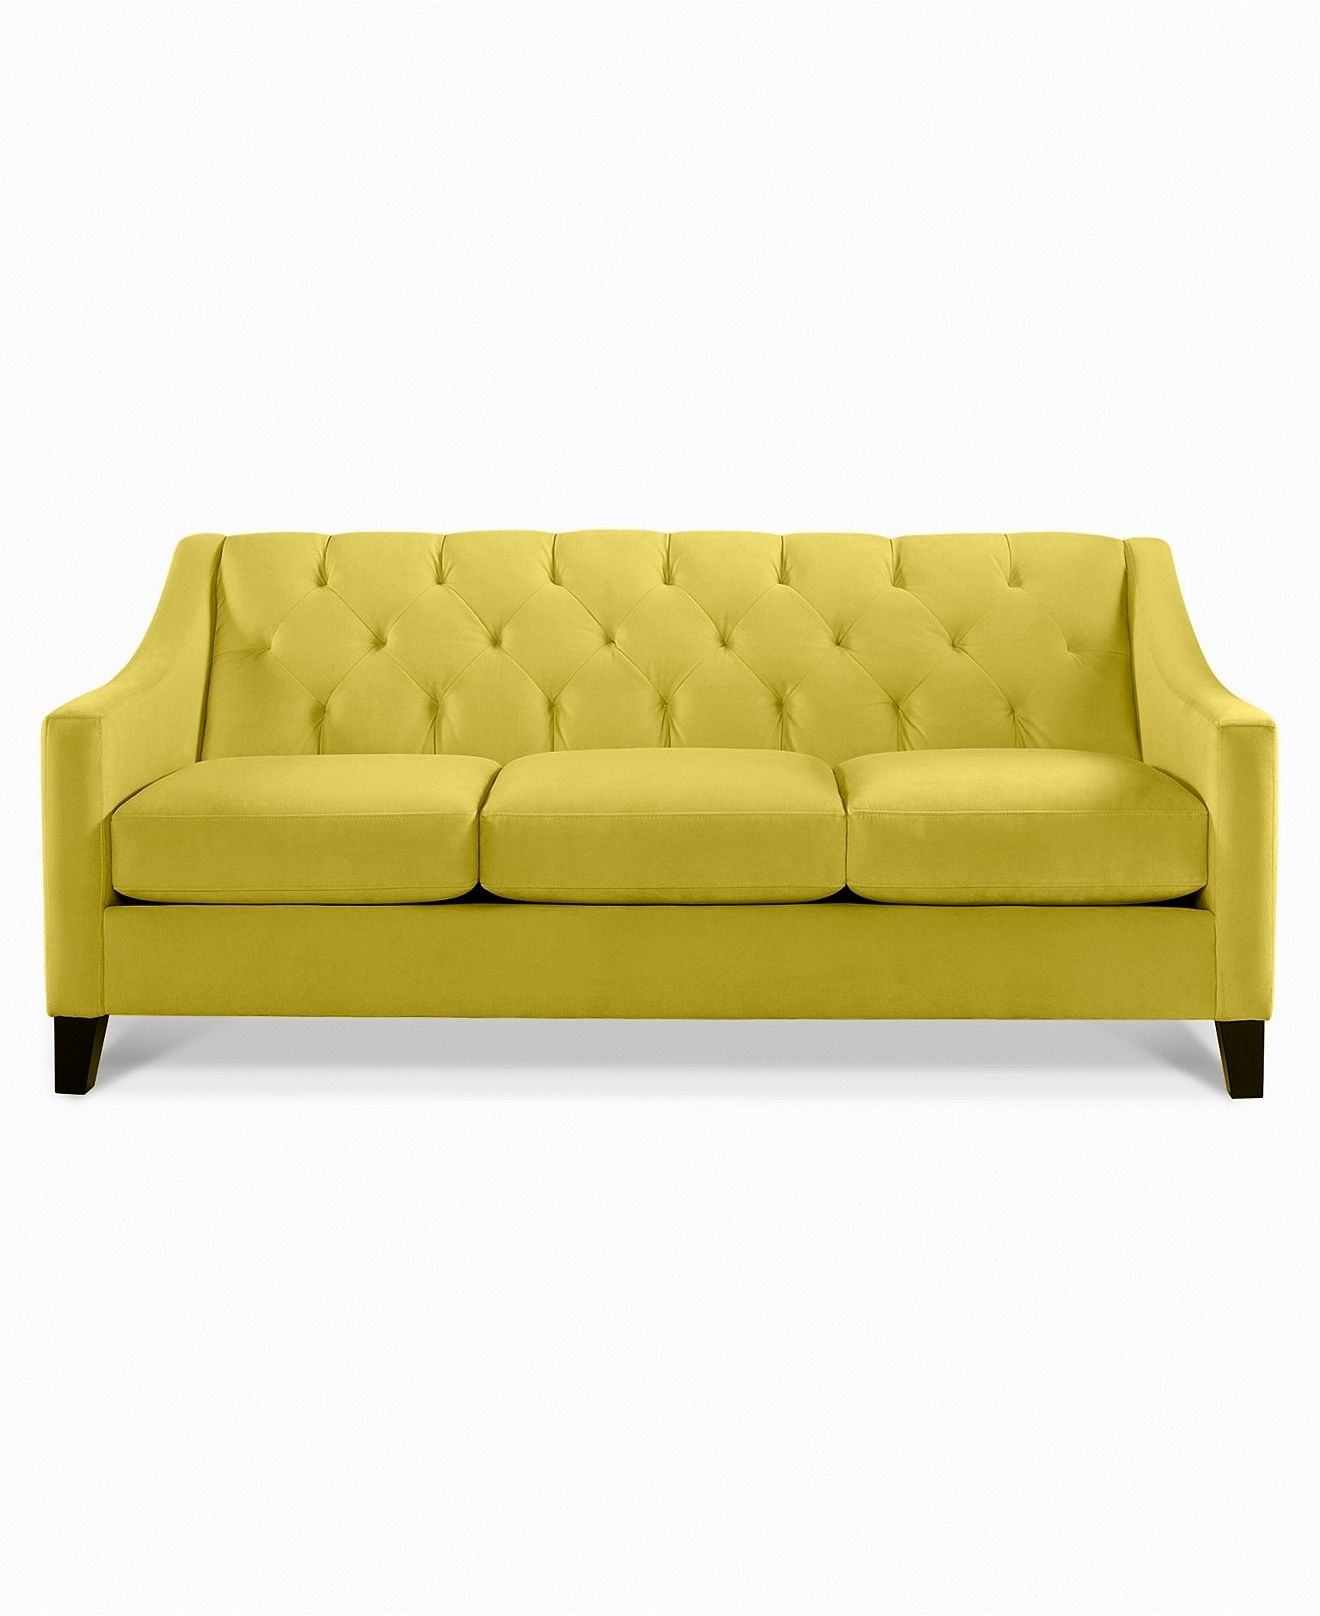 Well Known Furniture : Button Tufted Fabric Sofa Sofa Dallas Furniture Ottawa For Dufresne Sectional Sofas (View 12 of 15)